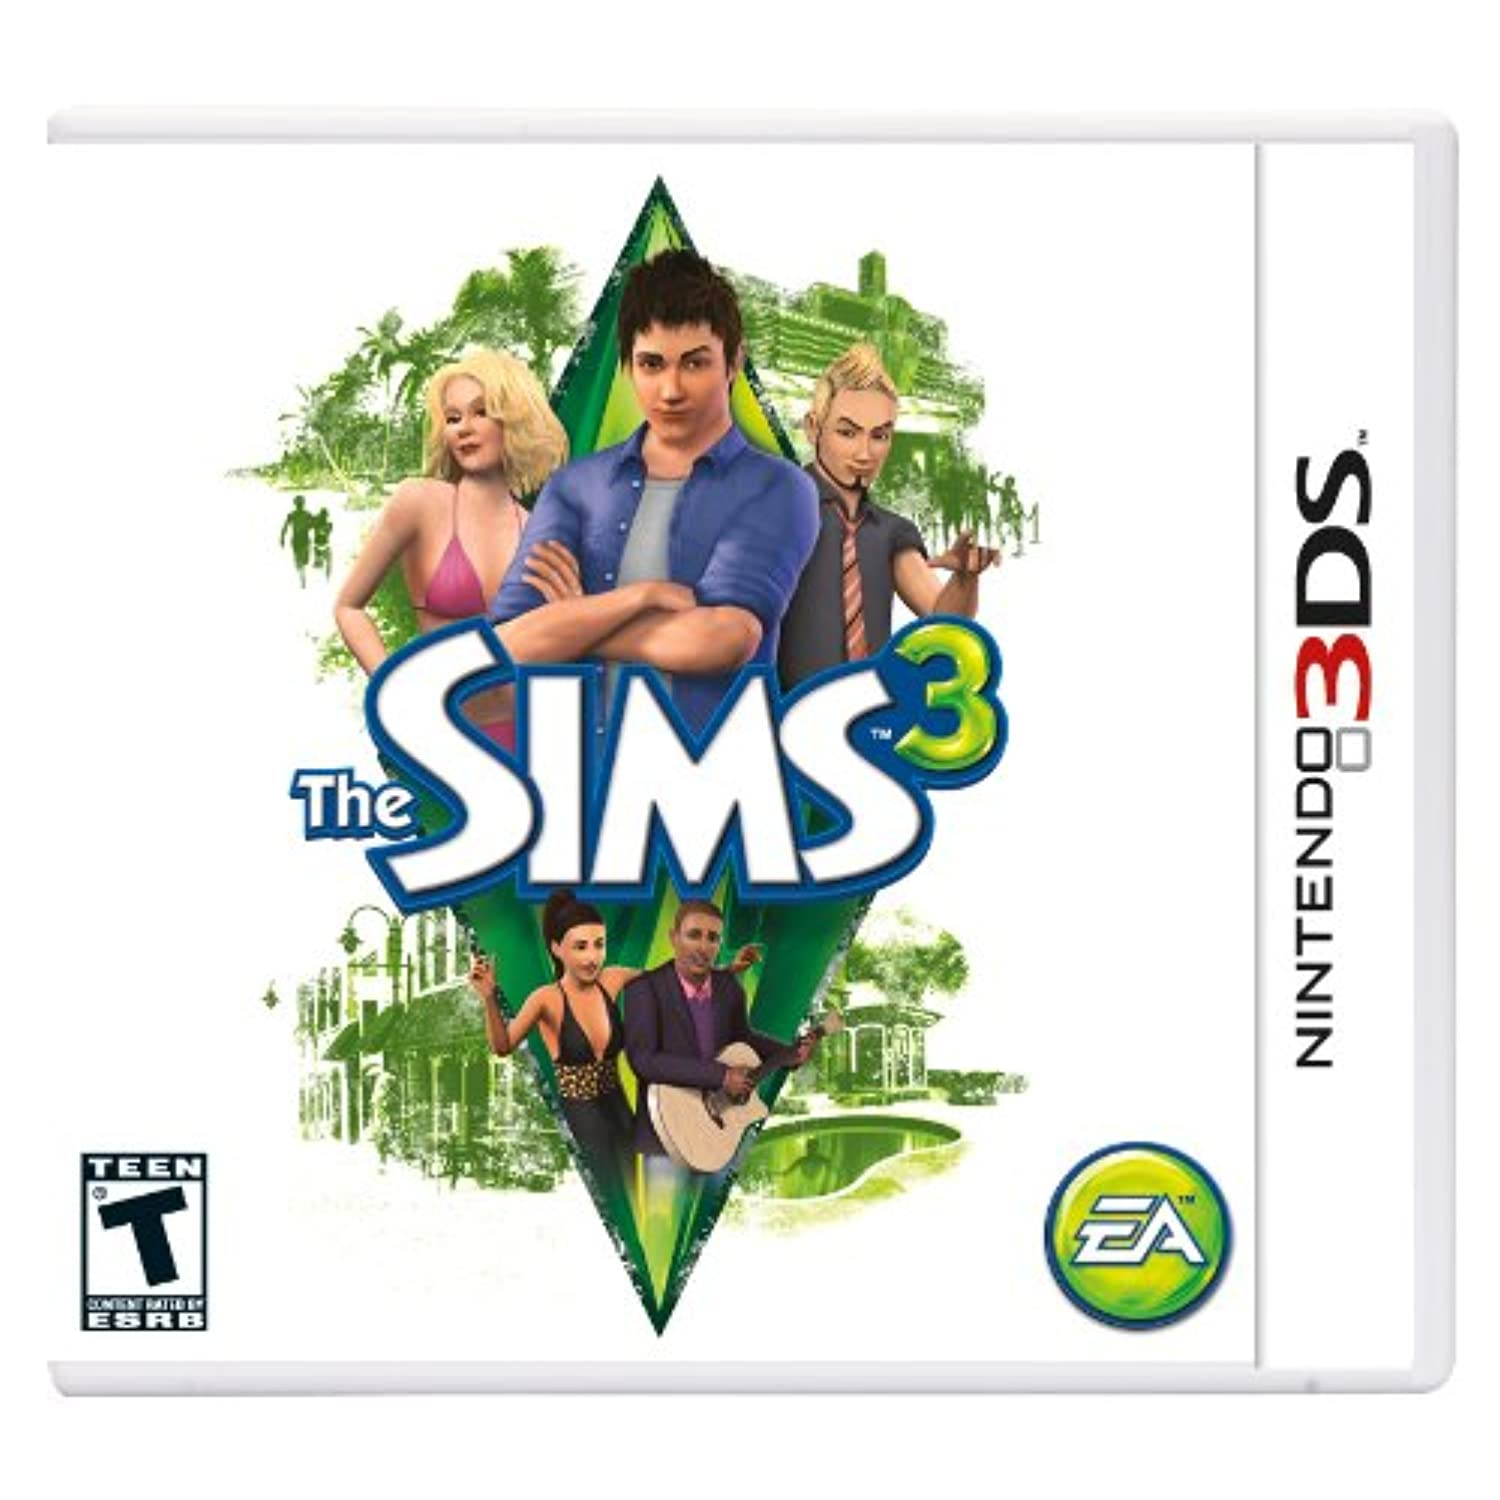 Sims 3 game nude mod ps3 download smut photos